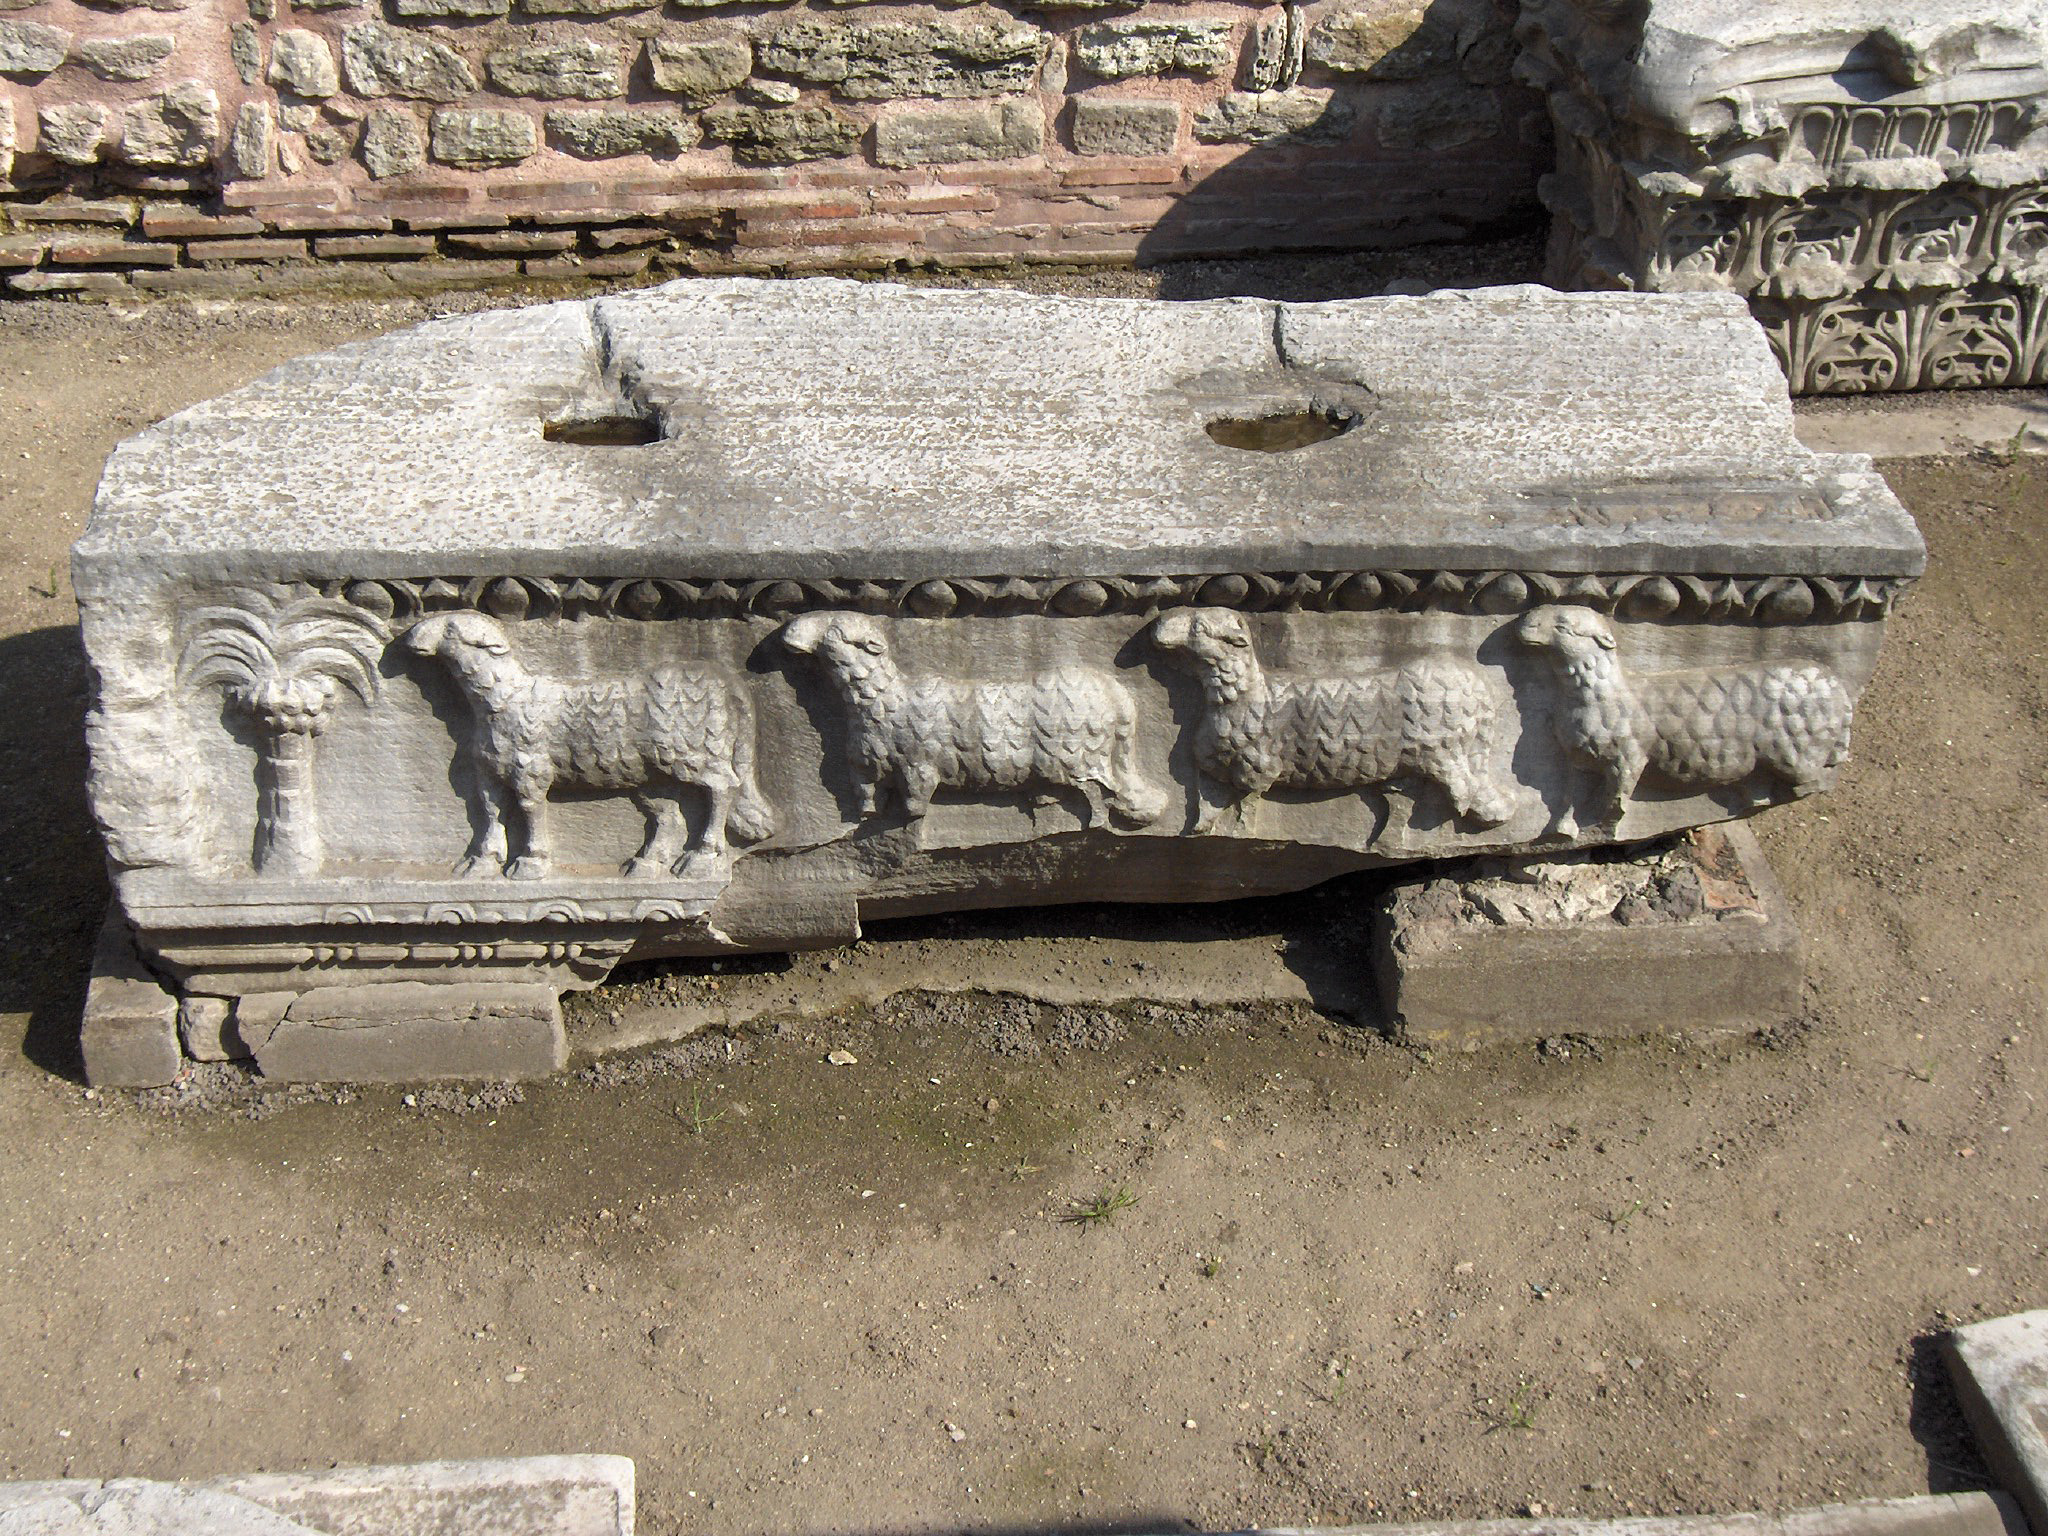 Stone remains of the basilica ordered by Theodosius II, showing the Lamb of God